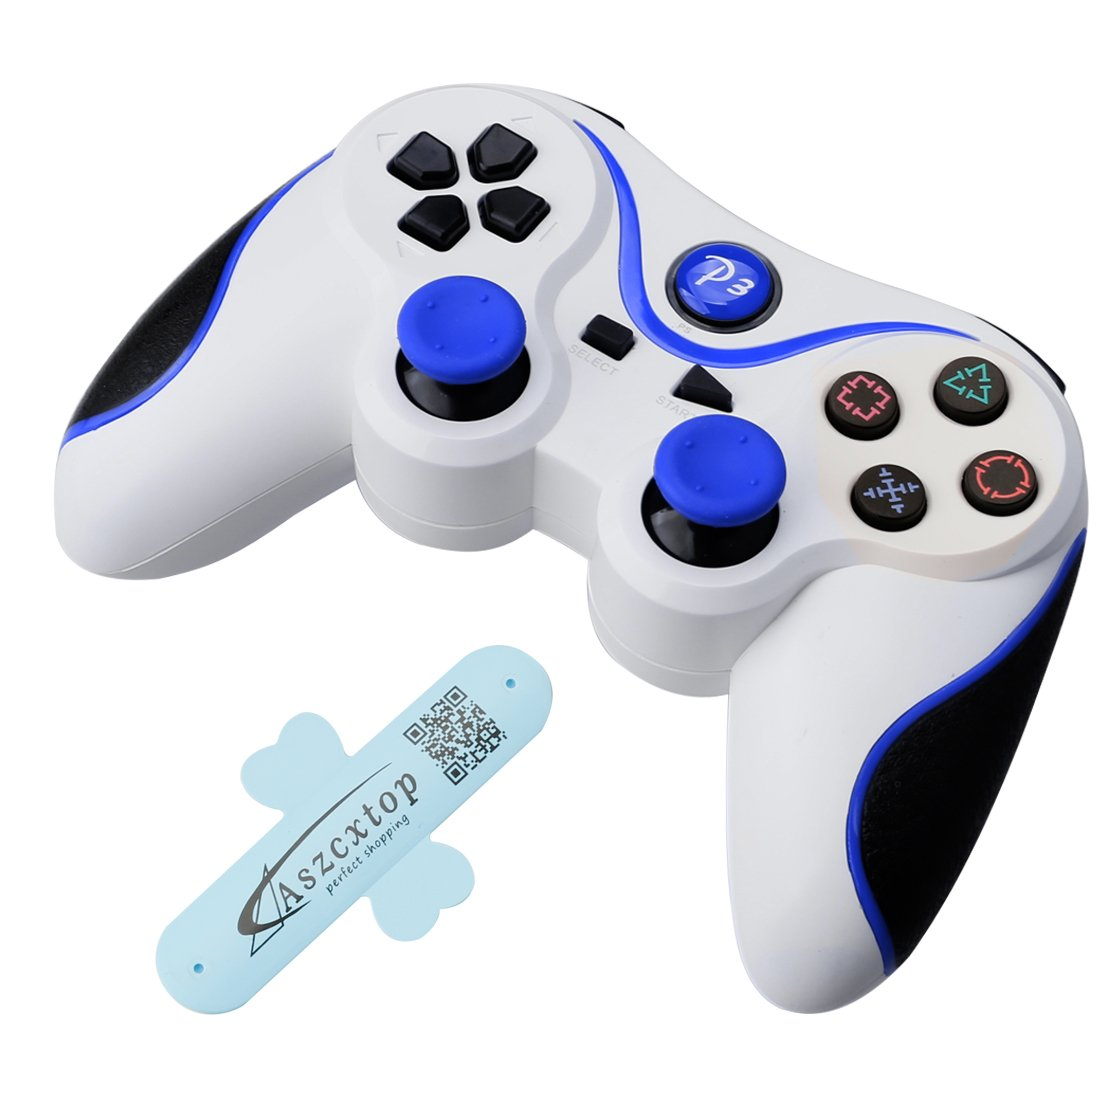 Cheap ps3 gamepad driver, find ps3 gamepad driver deals on line at.